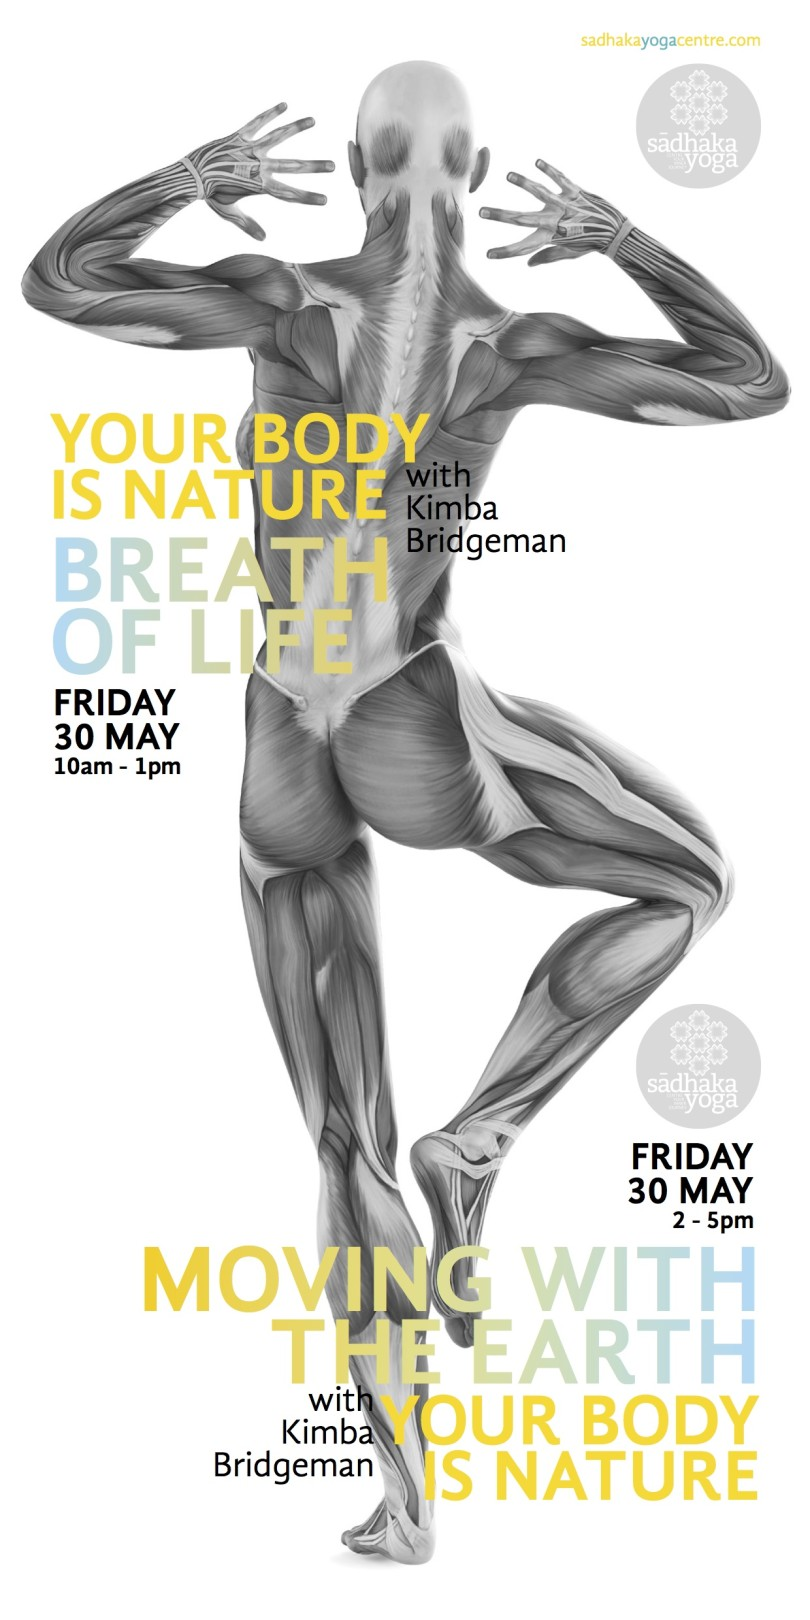 Your Body is Nature: Yoga Anatomy Workshop Series